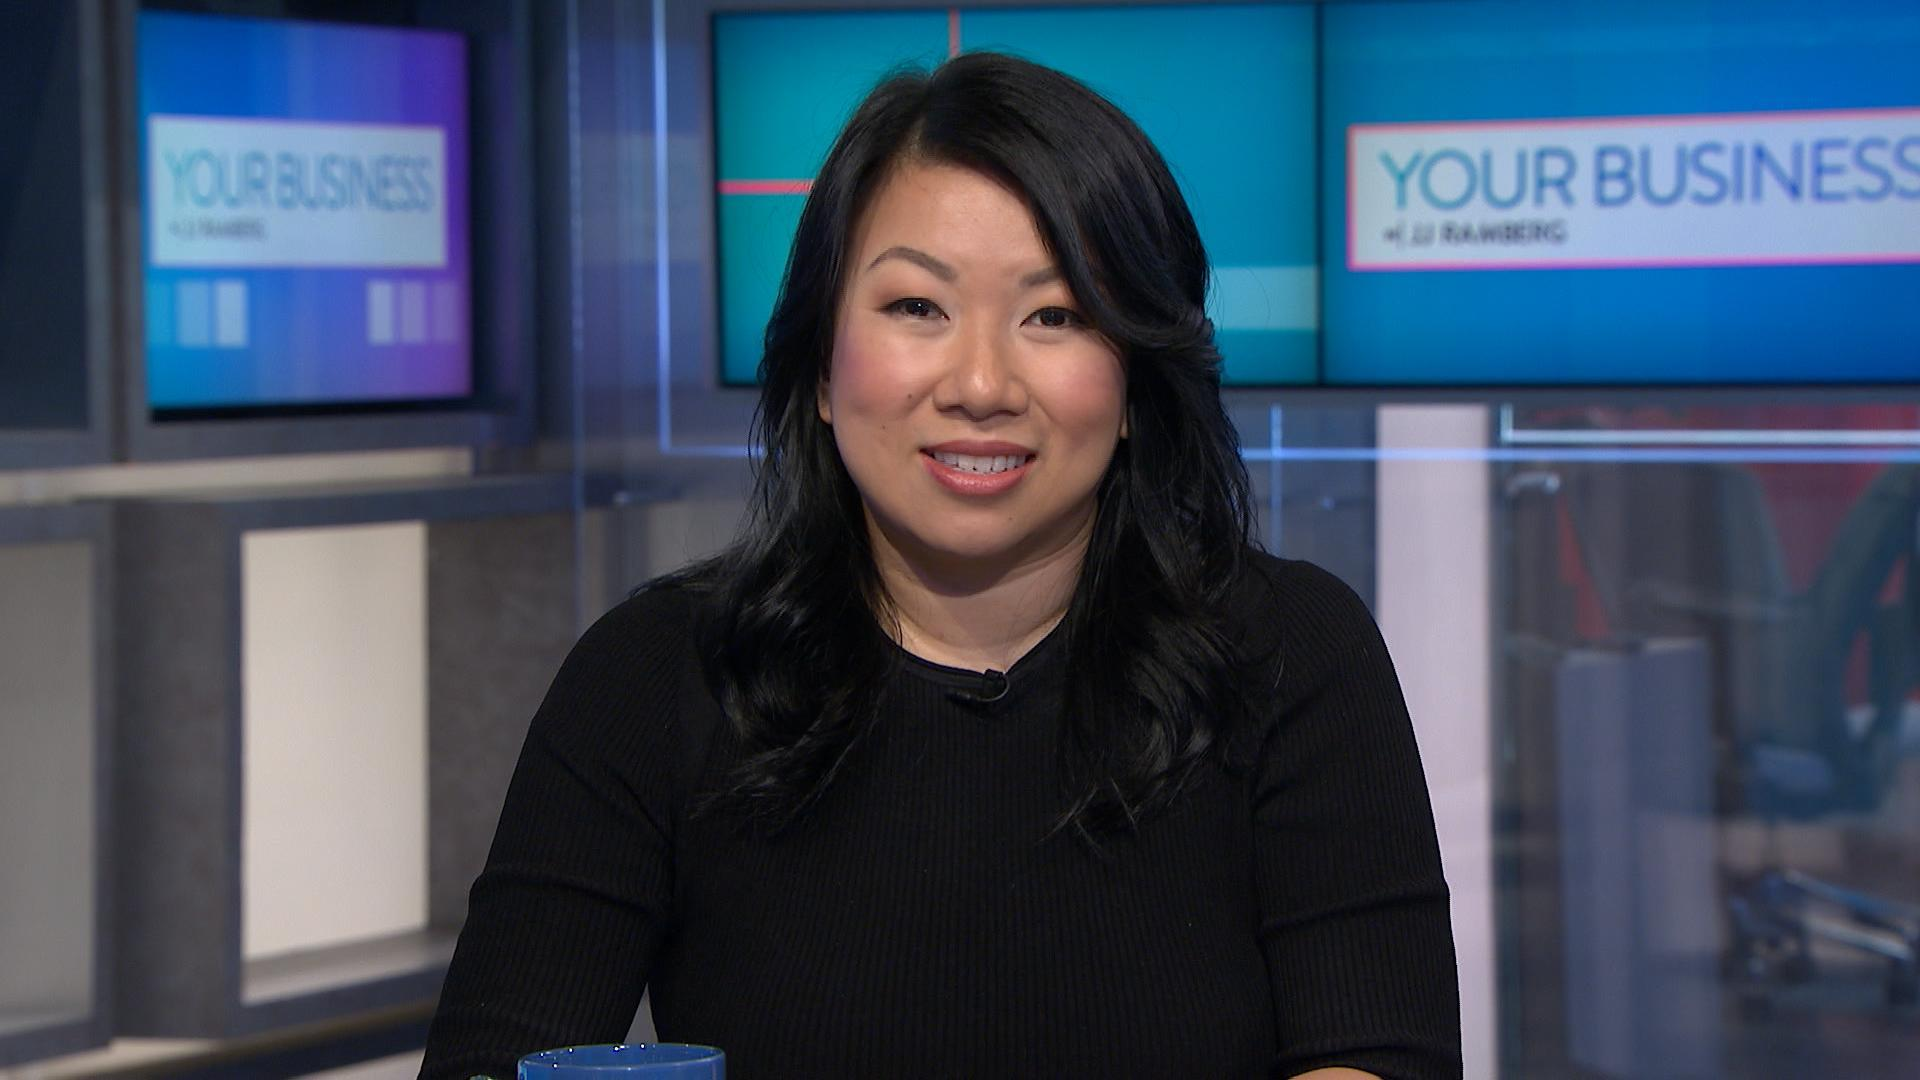 Shan-Lyn Ma tells us how to raise seed funds